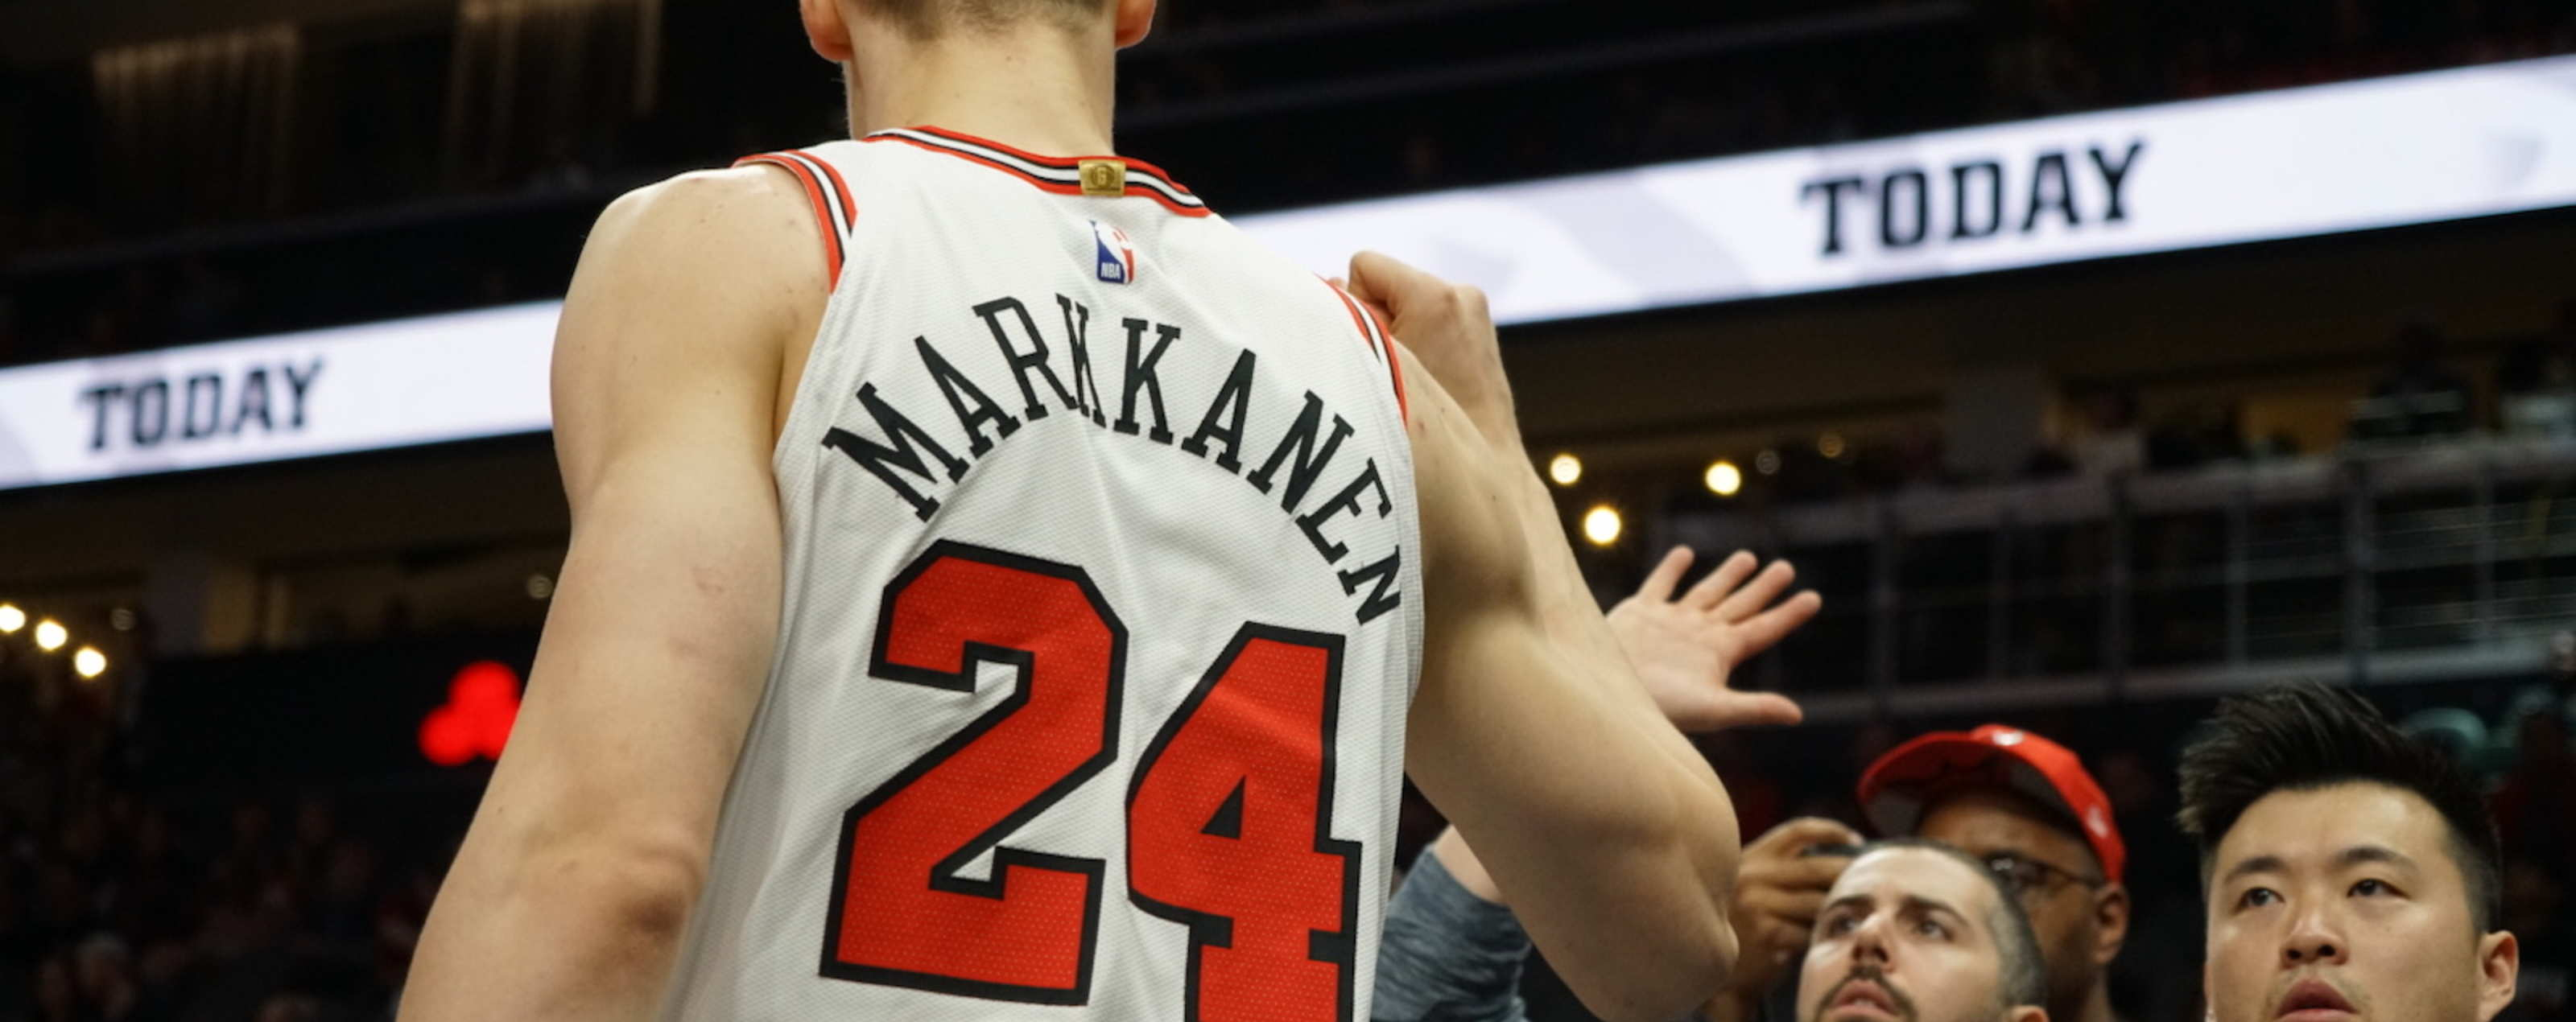 Markkanen High Fives Coaching Staff